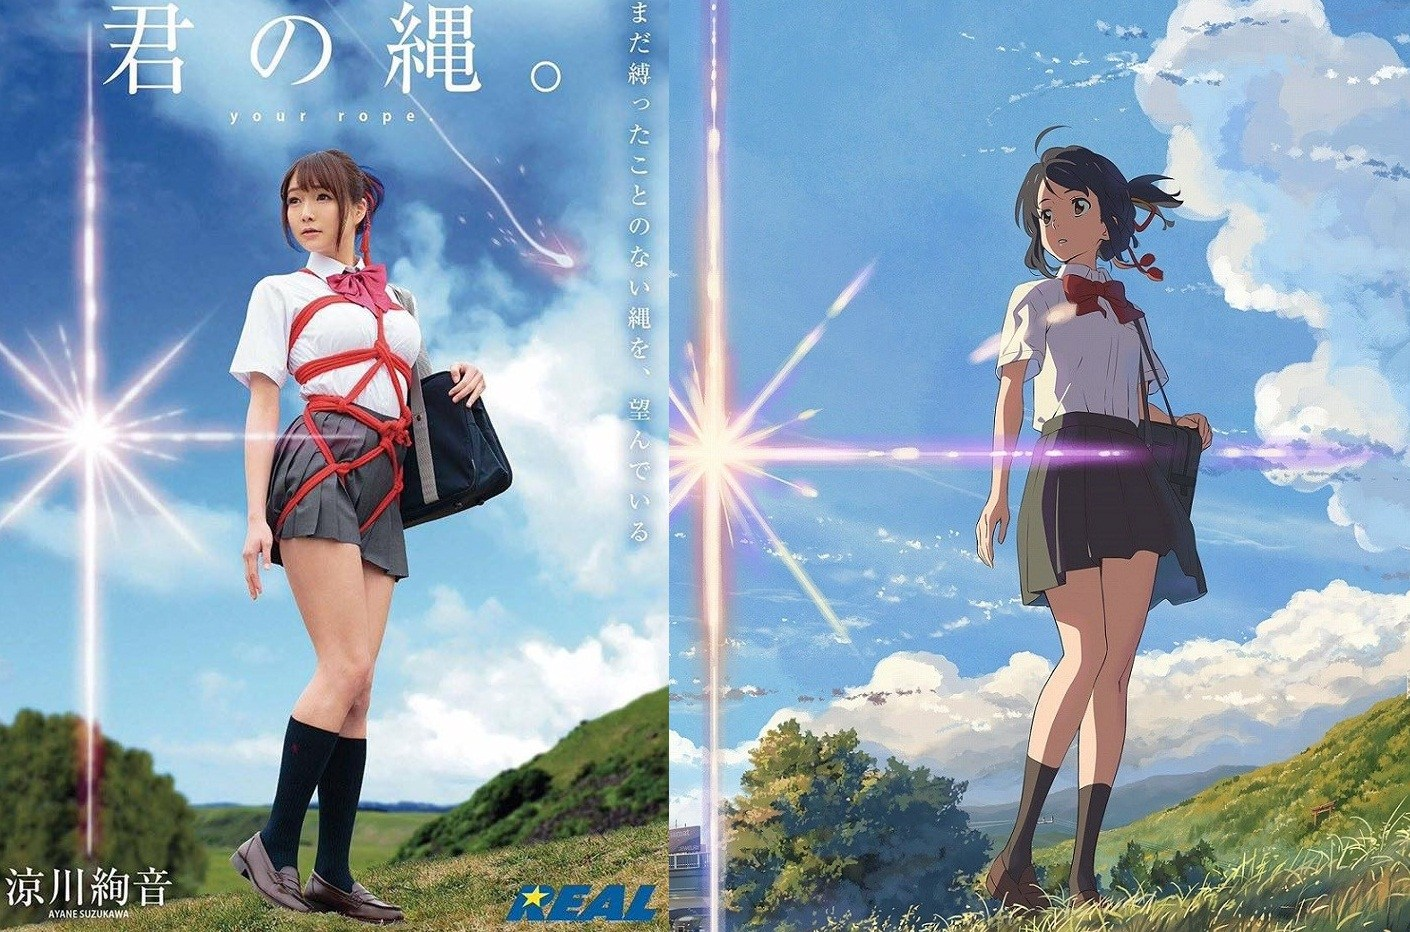 Not Porn Porn why are we not surprised? kimi no nawa (your name) gets a